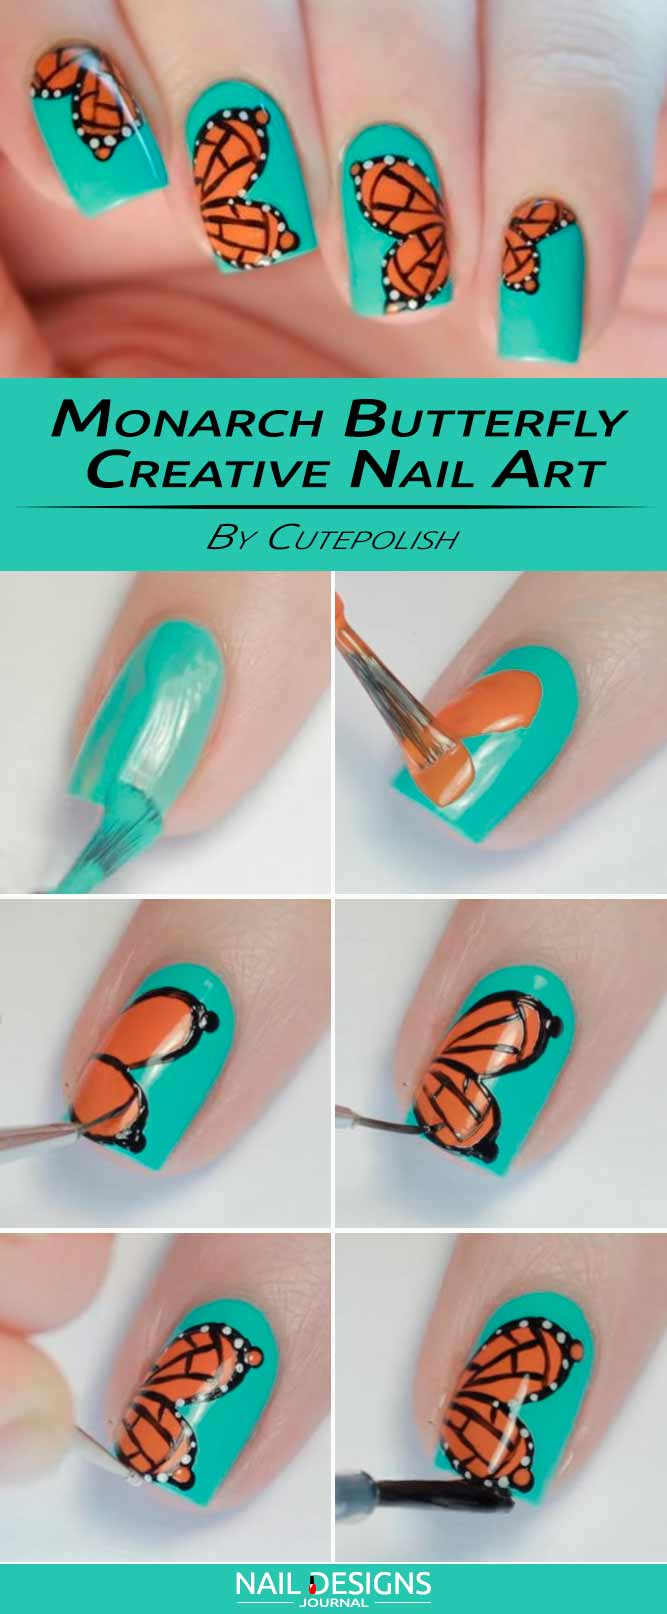 Monarch Erfly Creative Nails Art